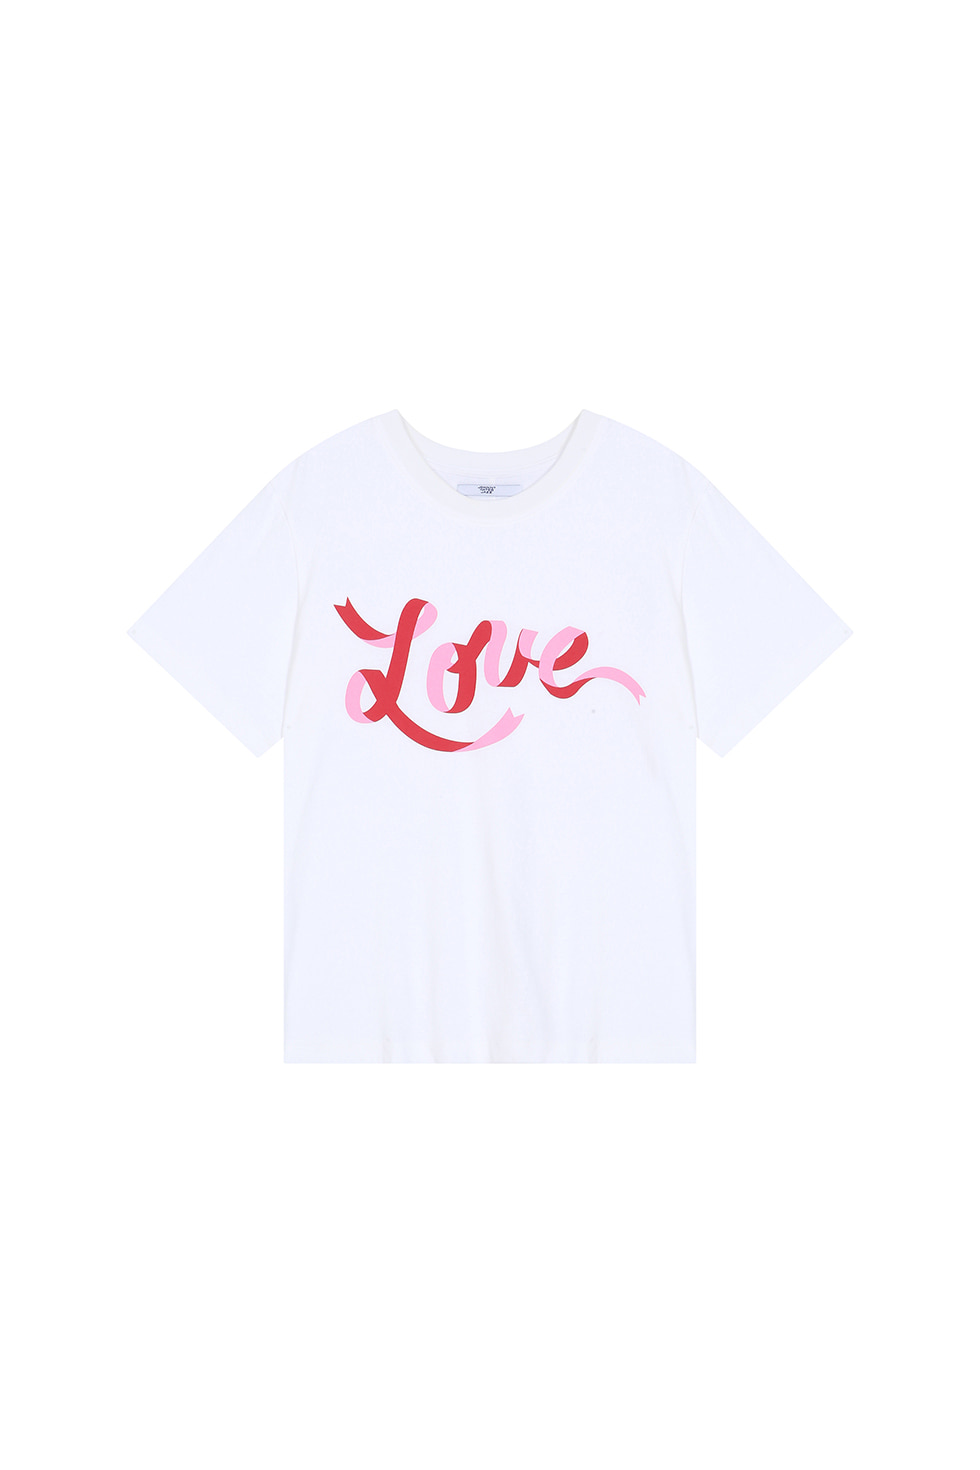 LOVE T-SHIRTS - WHITE